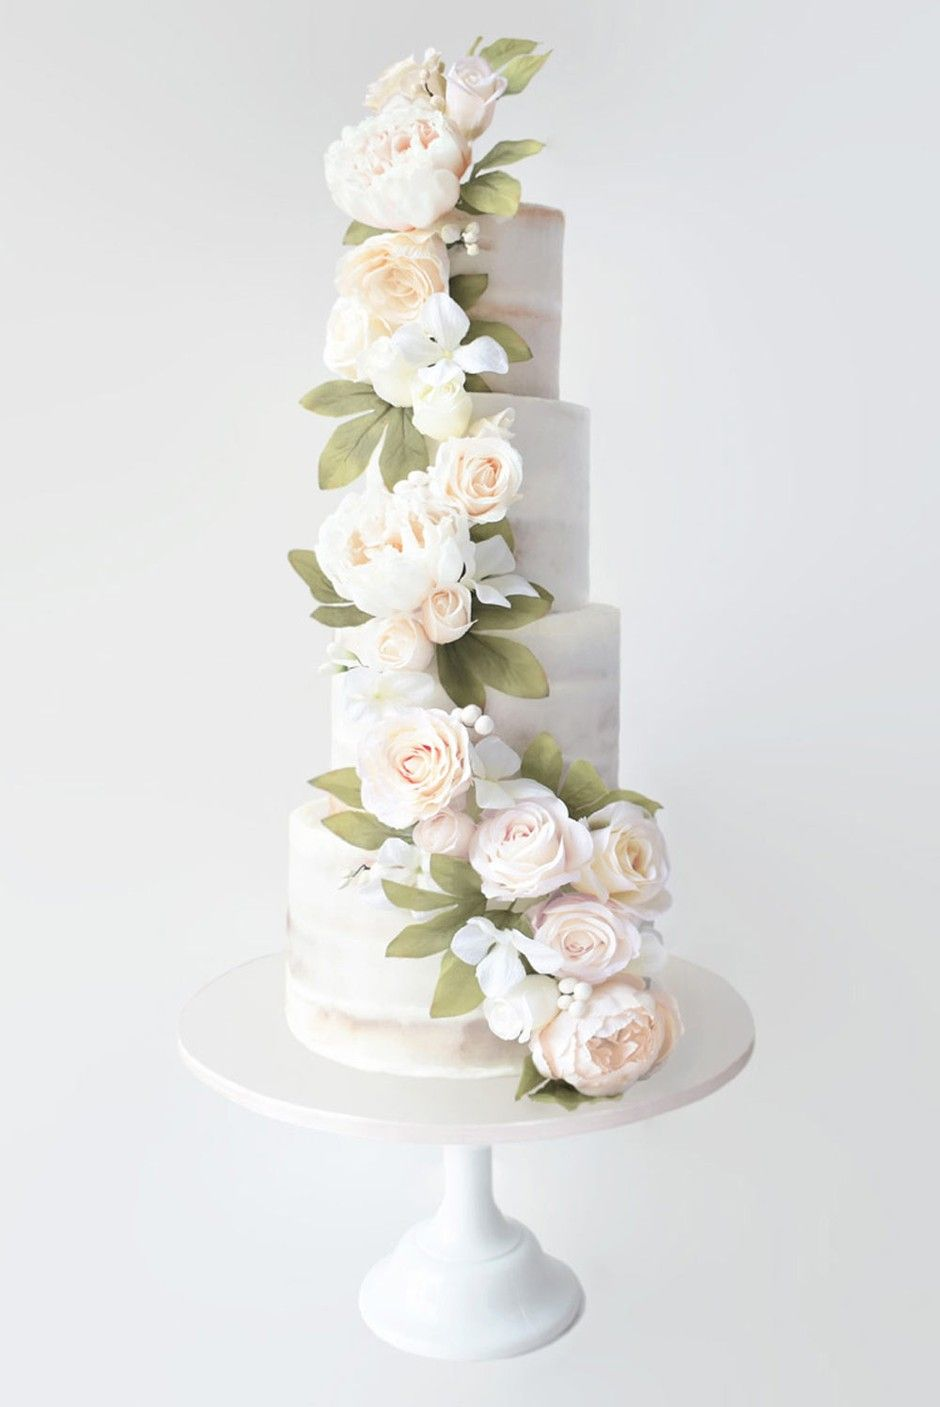 Wedding Cake Prices How Much Does A Wedding Cake Cost Wedding Cake Cost Wedding Cake Prices Wedding Cakes